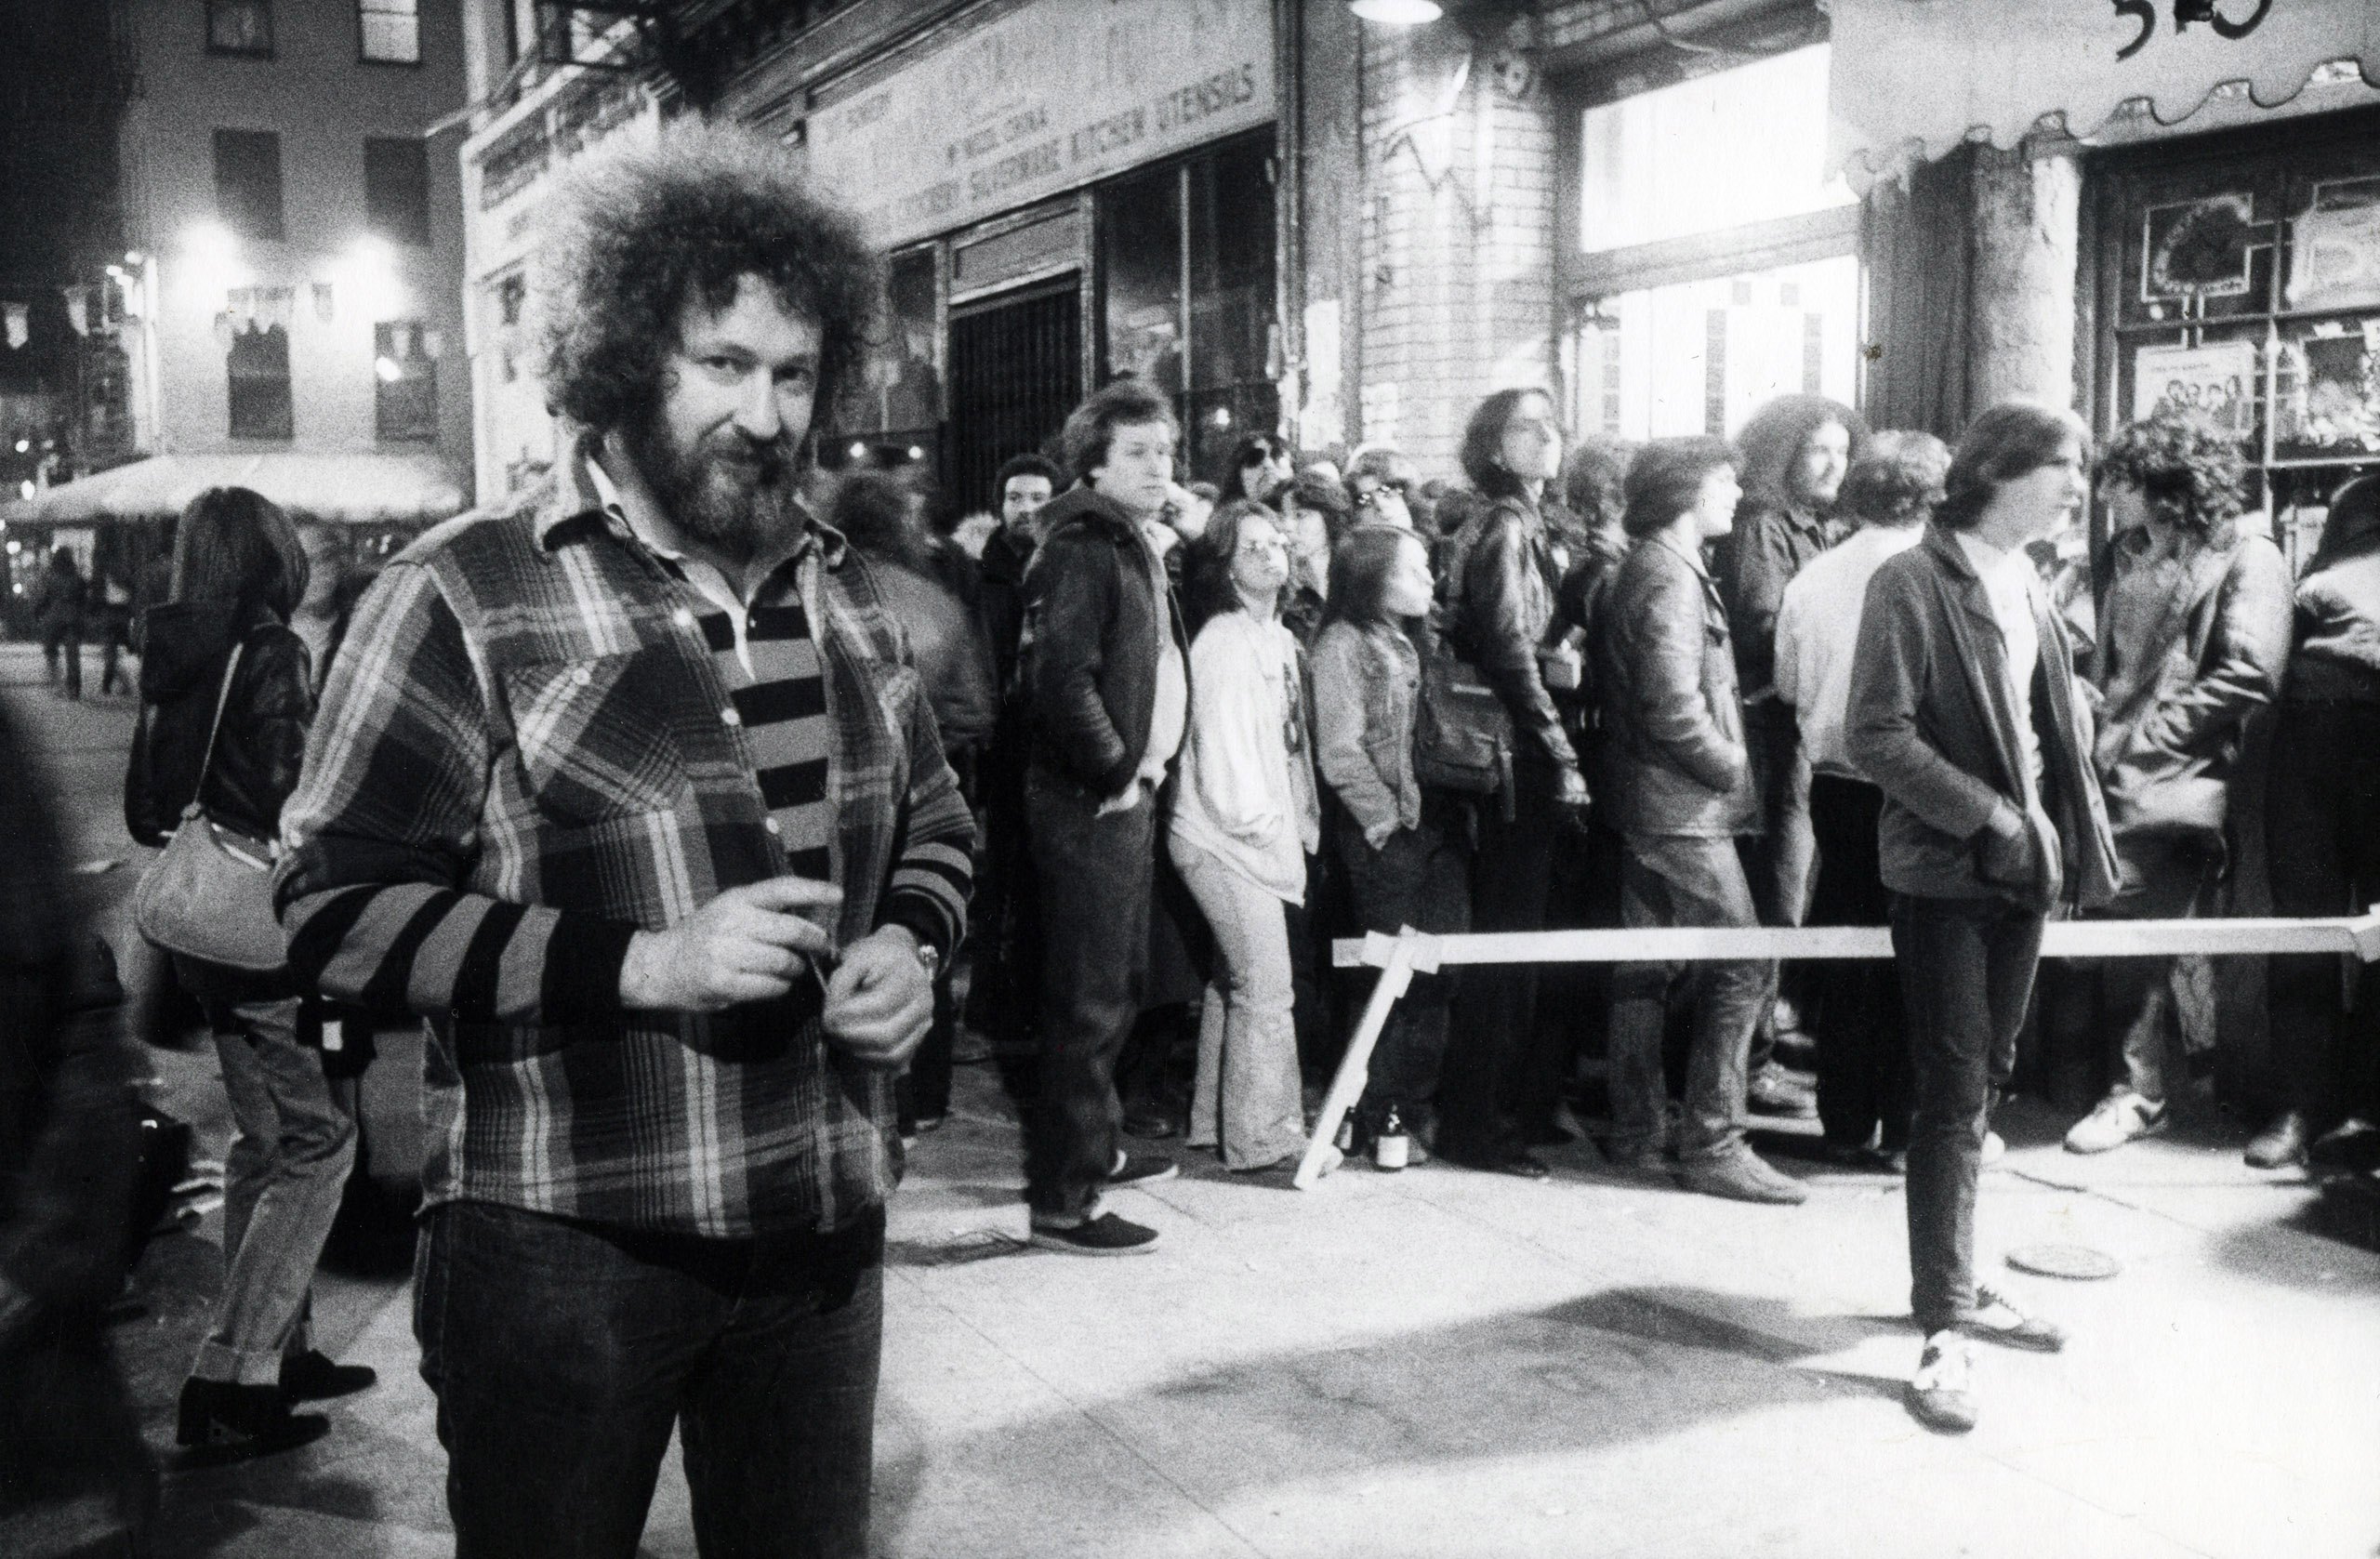 Hilly Kristal, Bowery, 1977.